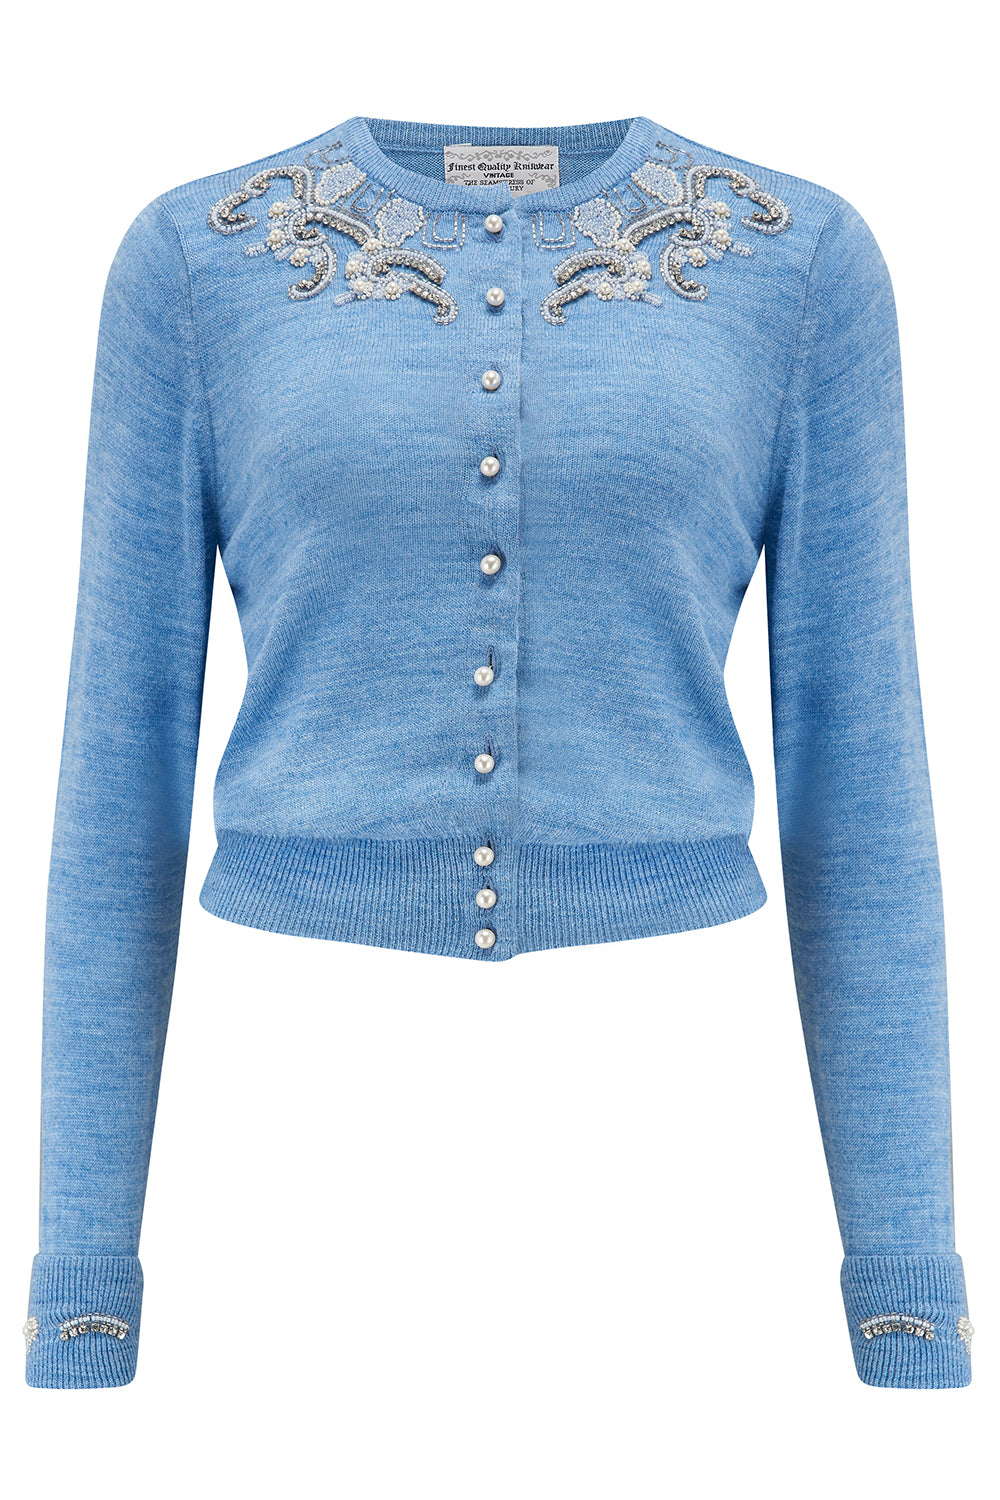 1940s Teenage Fashion: Girls The Beaded Cardigan in Marl Blue Stunning 1940s Vintage Style £69.00 AT vintagedancer.com